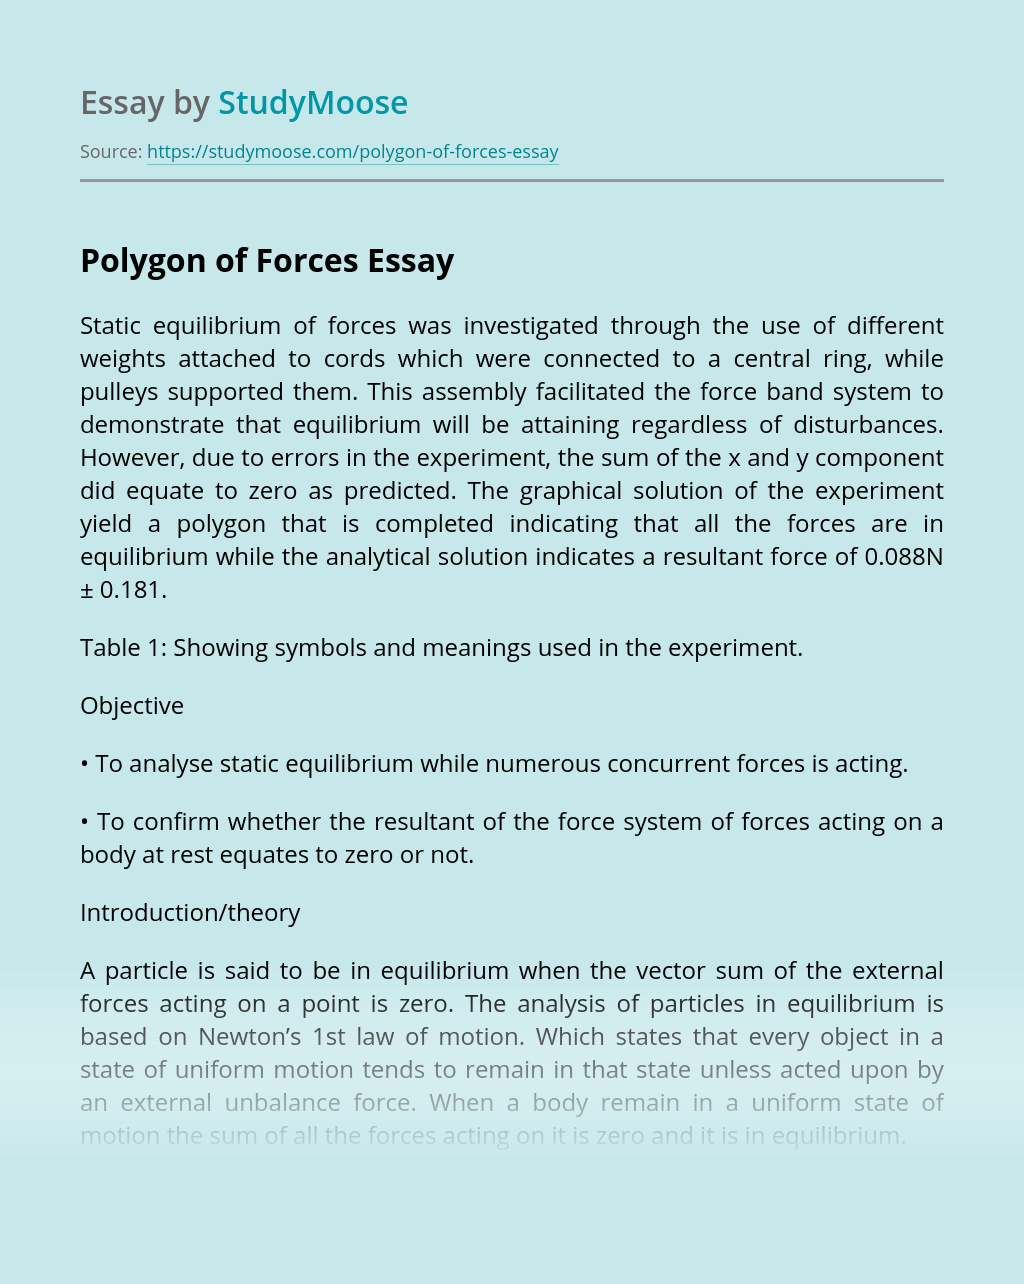 Polygon of Forces